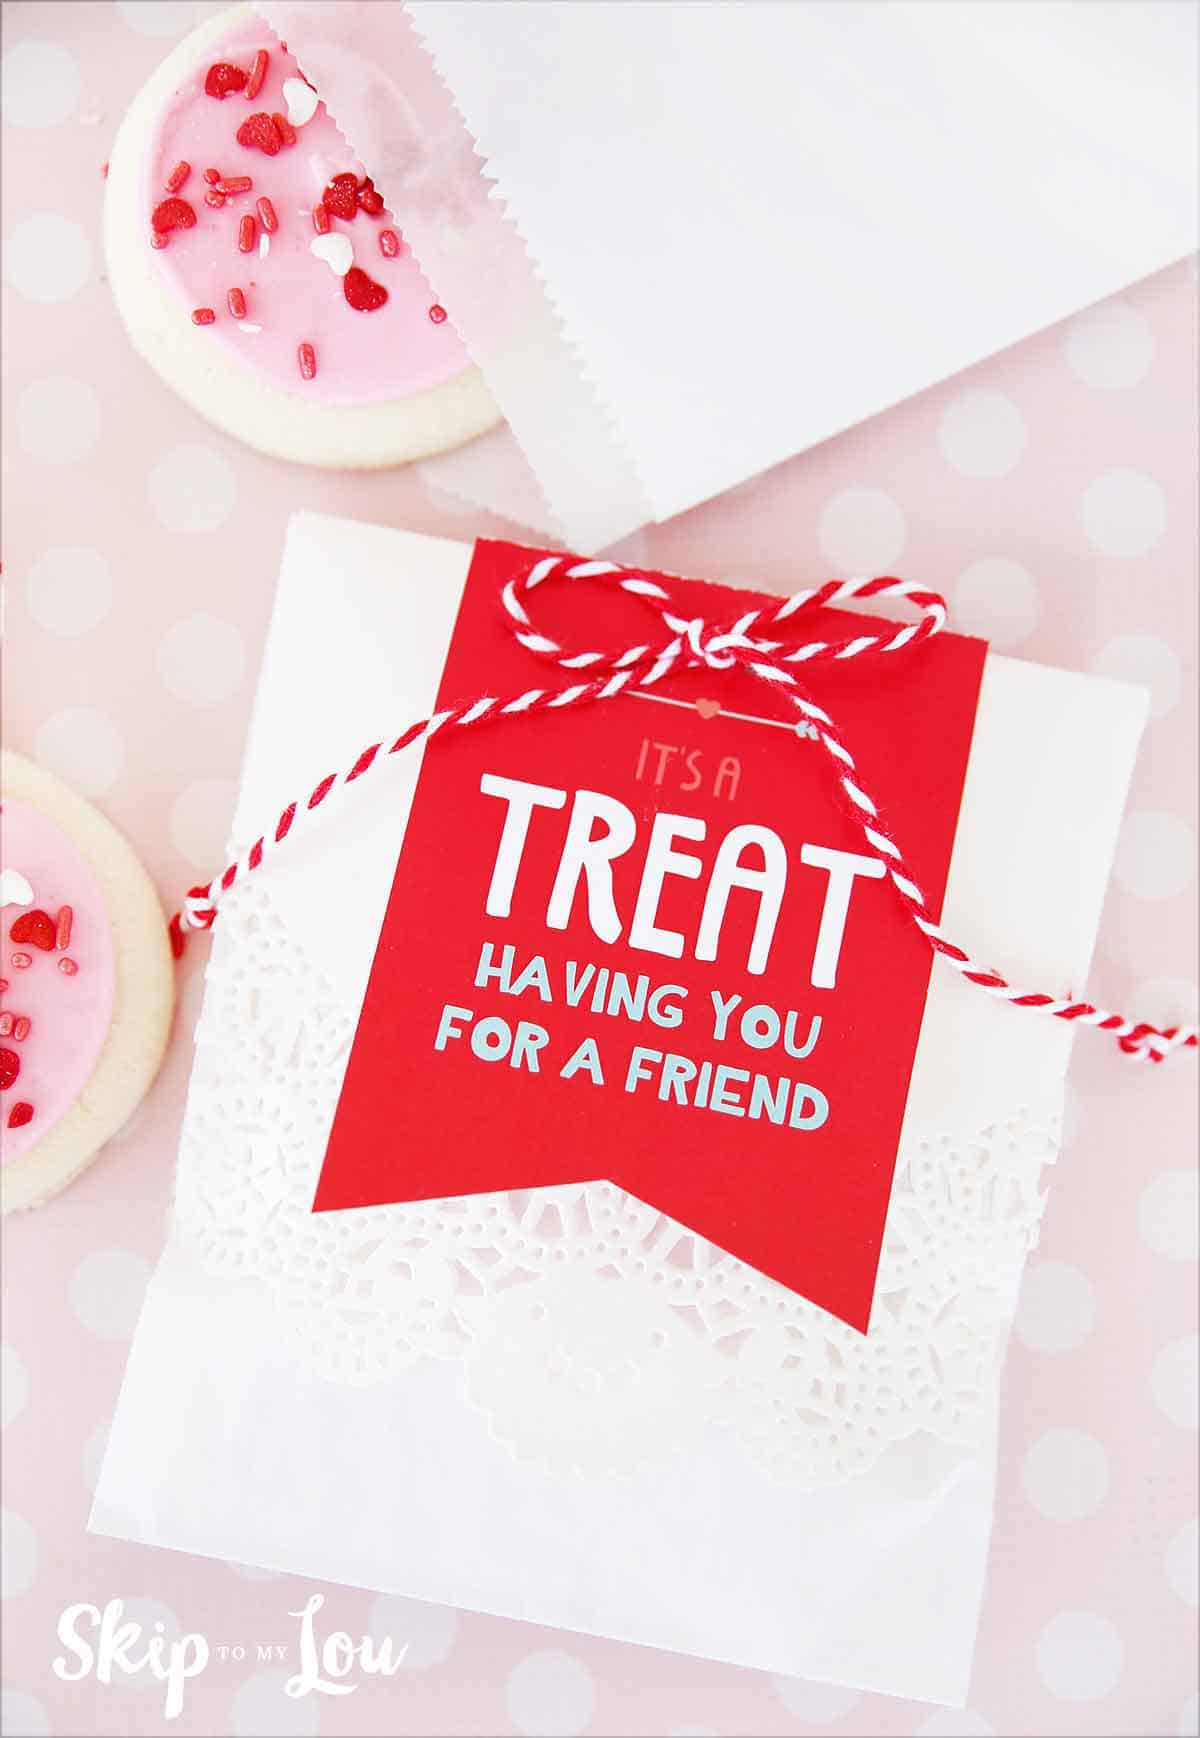 Valentines Day tags for your treats